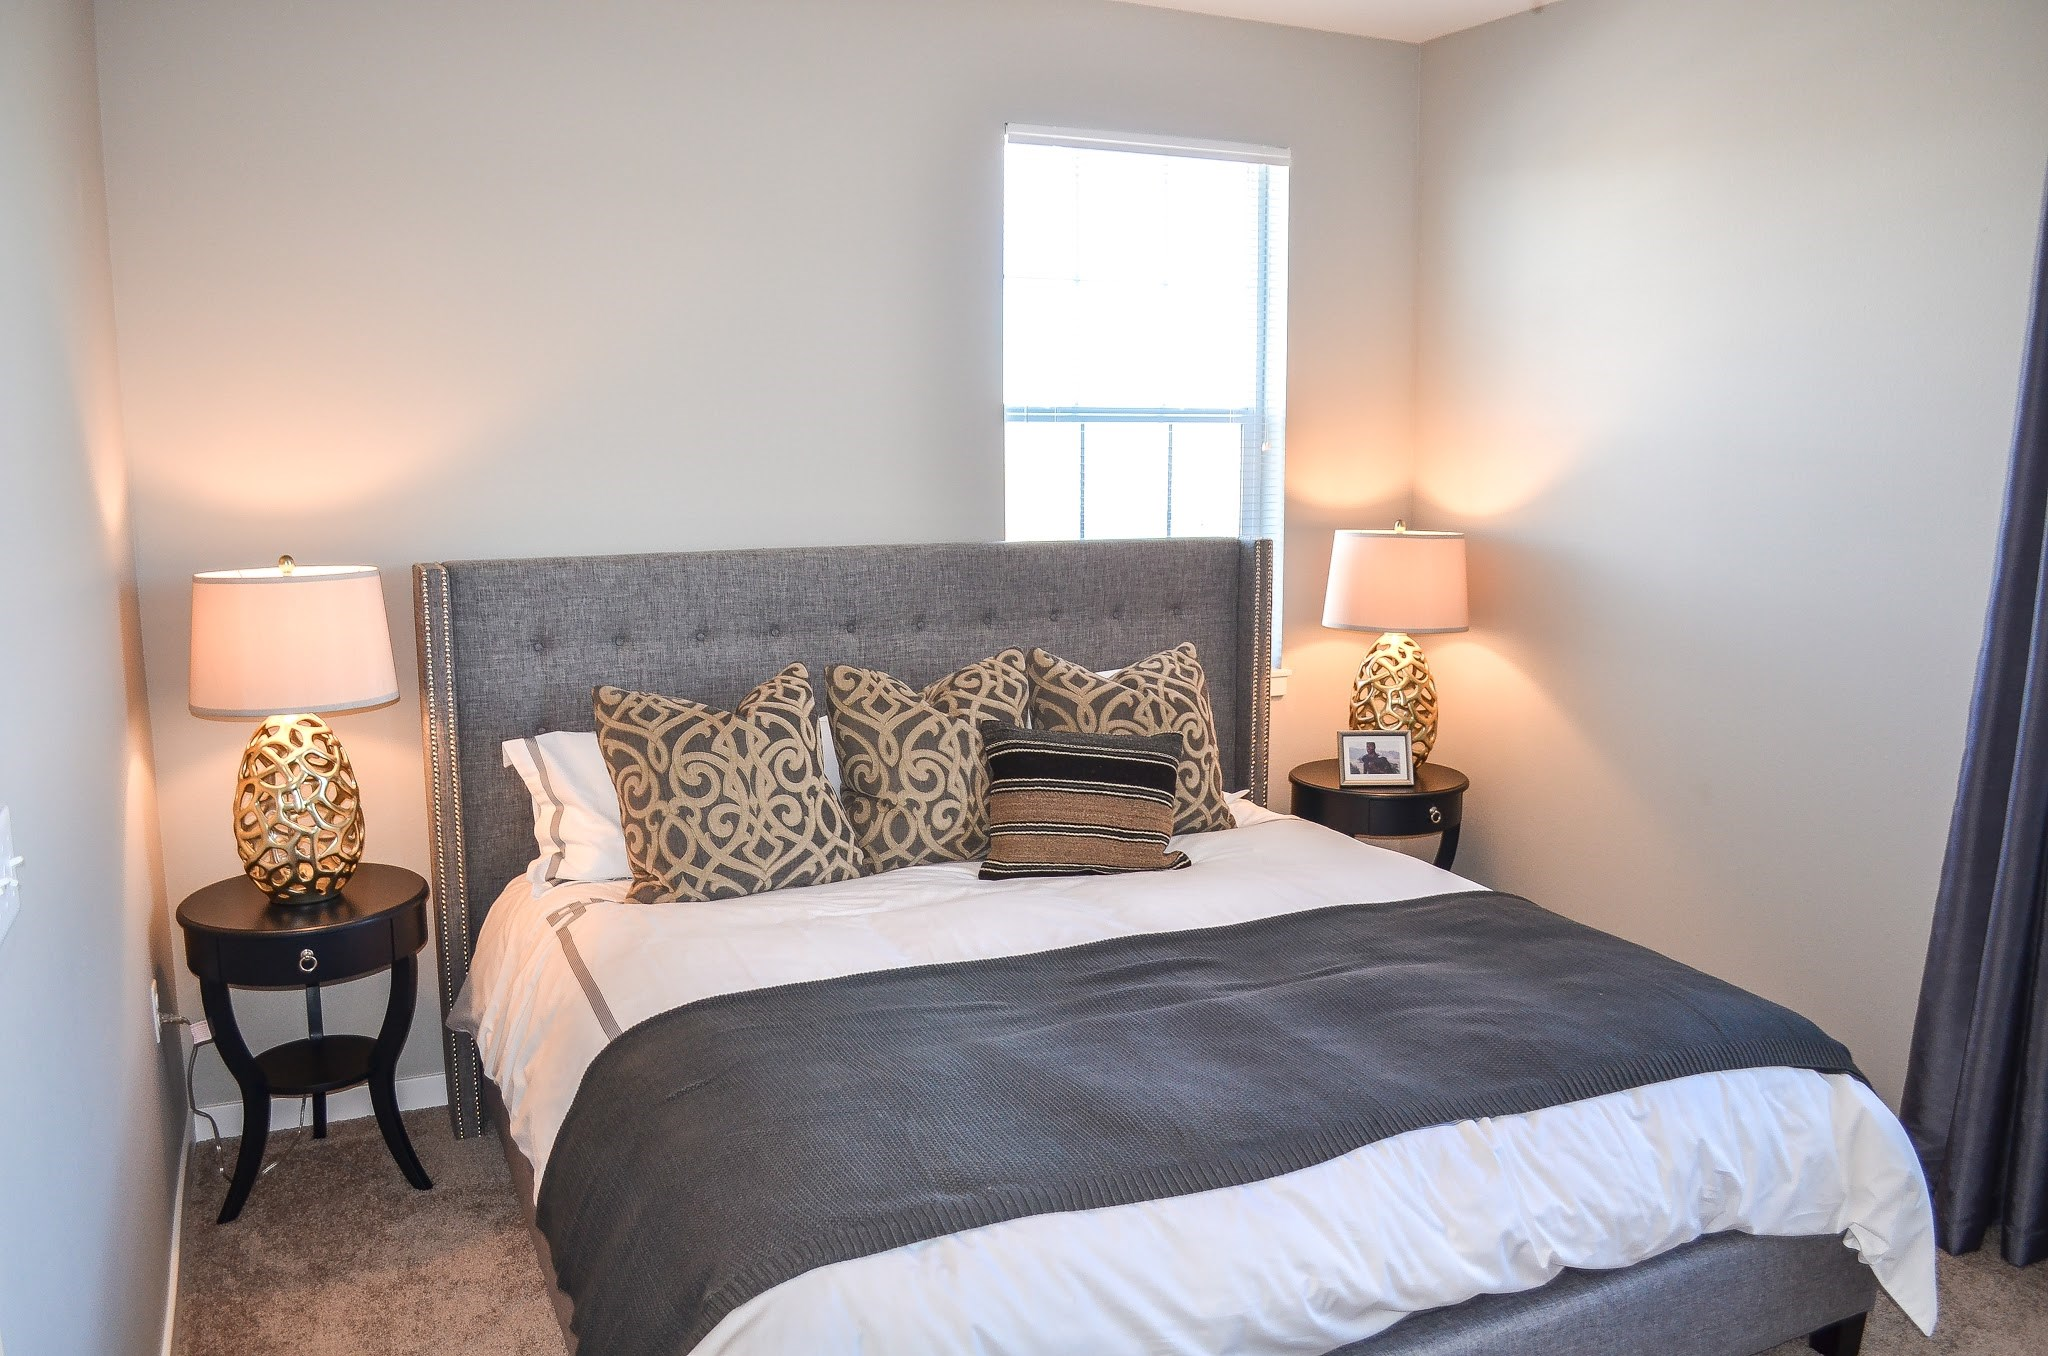 Bedroom at Black Feather Apartments in Castle Rock, CO